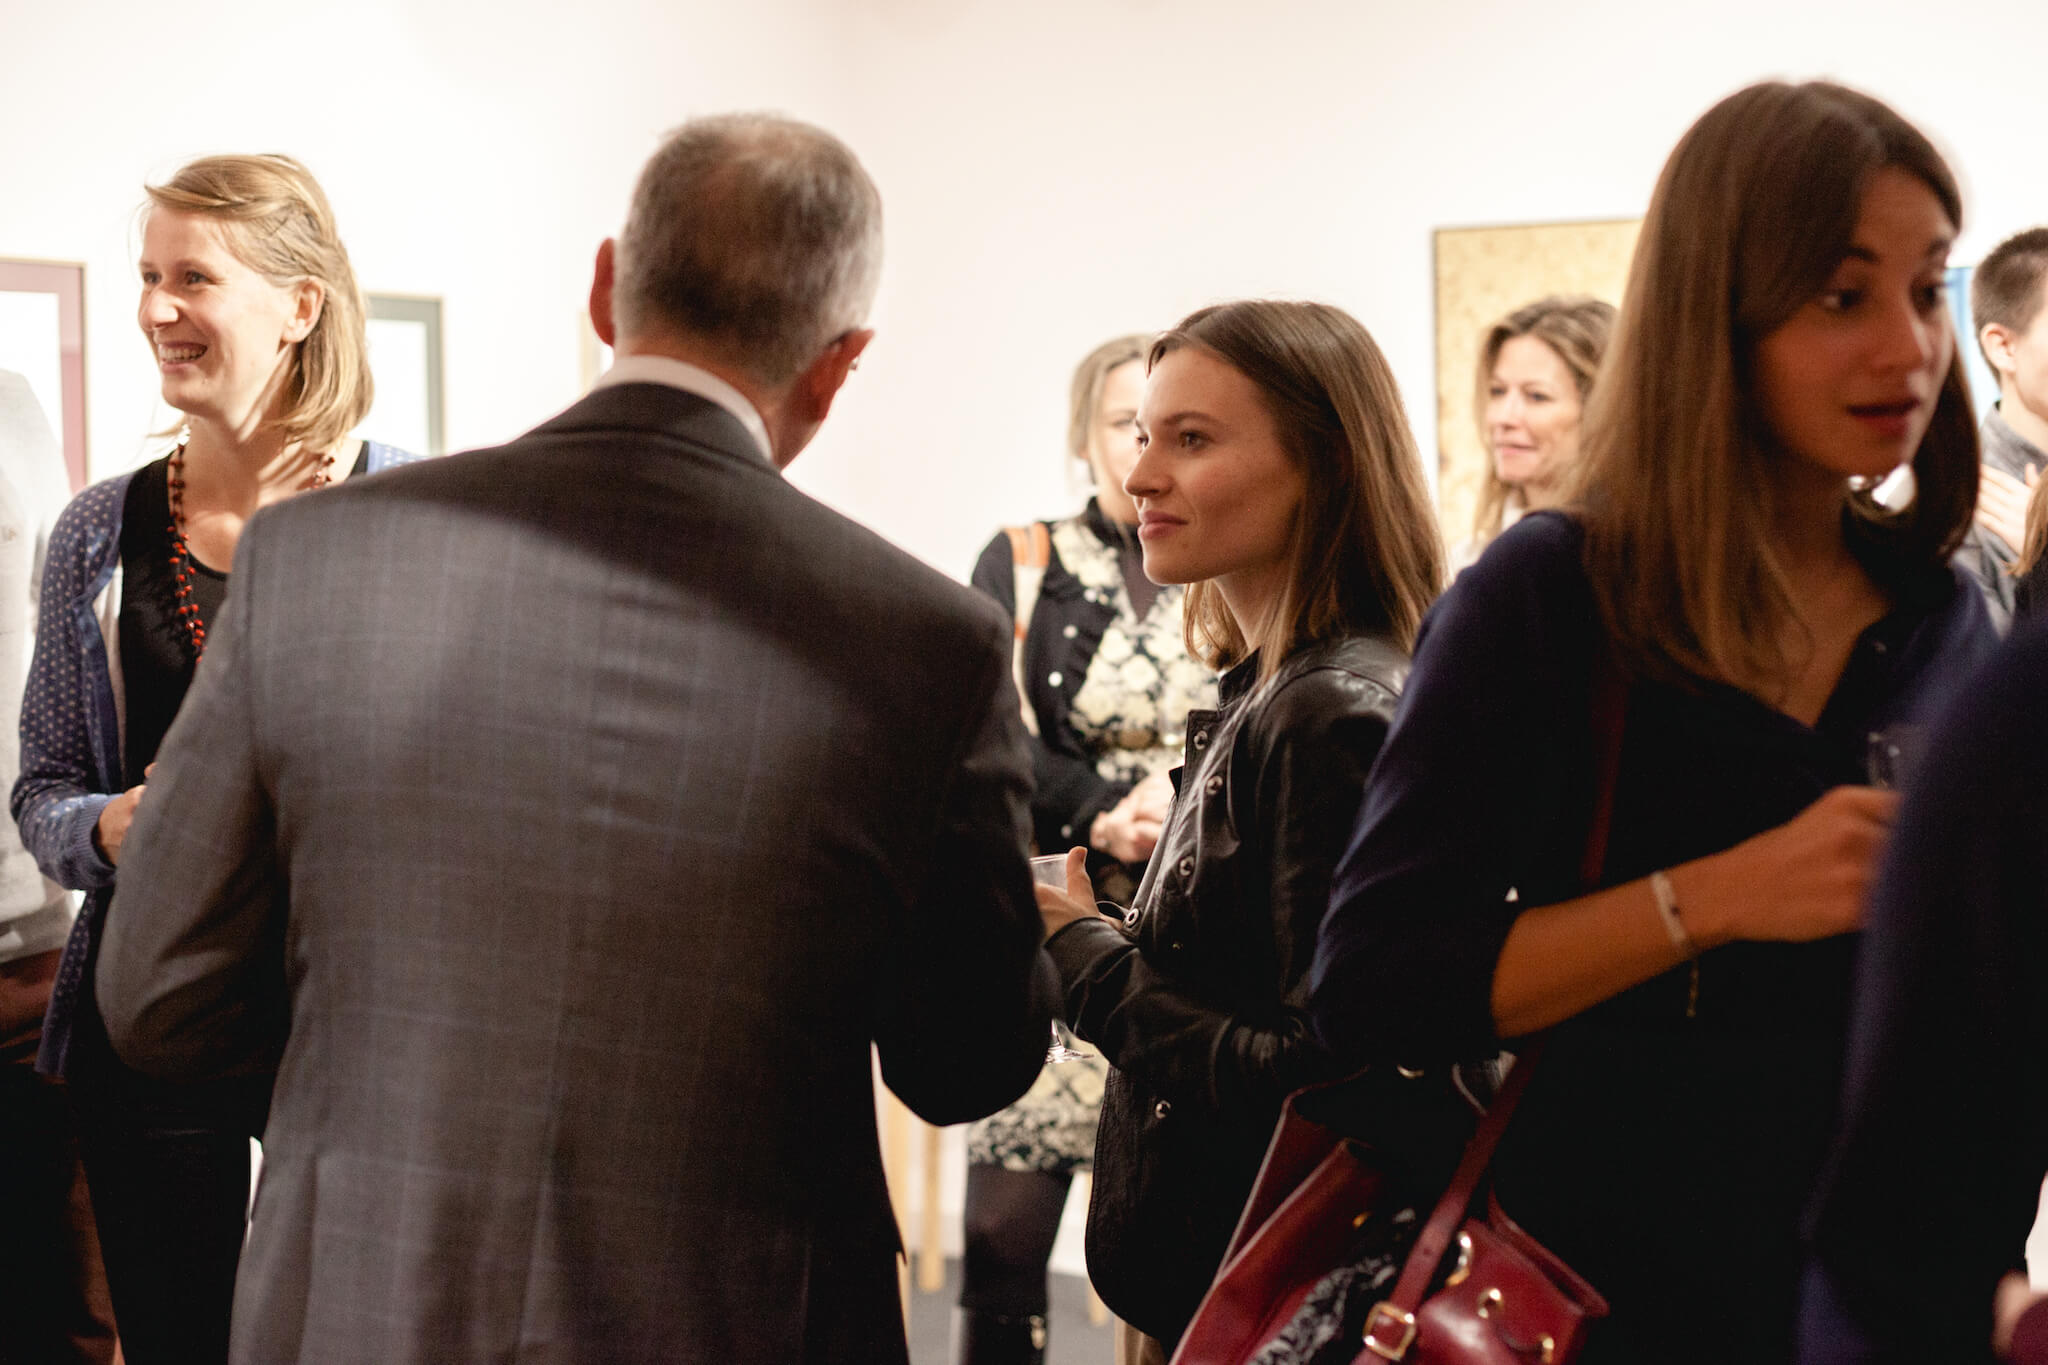 bumper-vernissage-immobilier-22.jpg